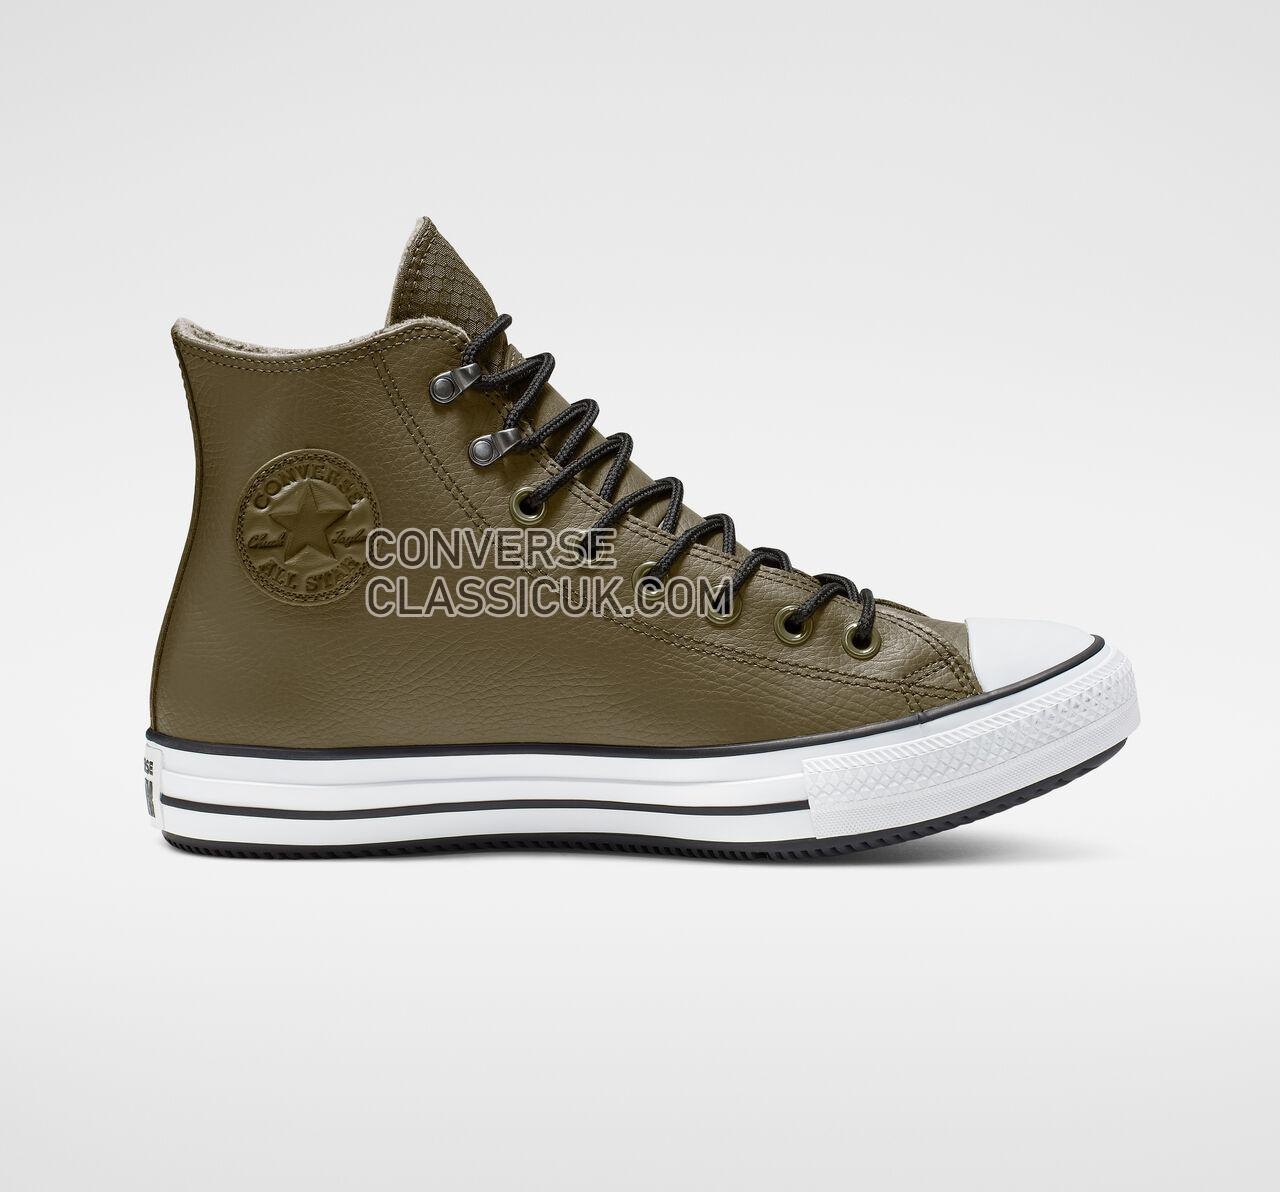 Converse Chuck Taylor All Star Winter Water-Repellent High Top Mens Womens Unisex 164925C Surplus Olive/Black/White Shoes